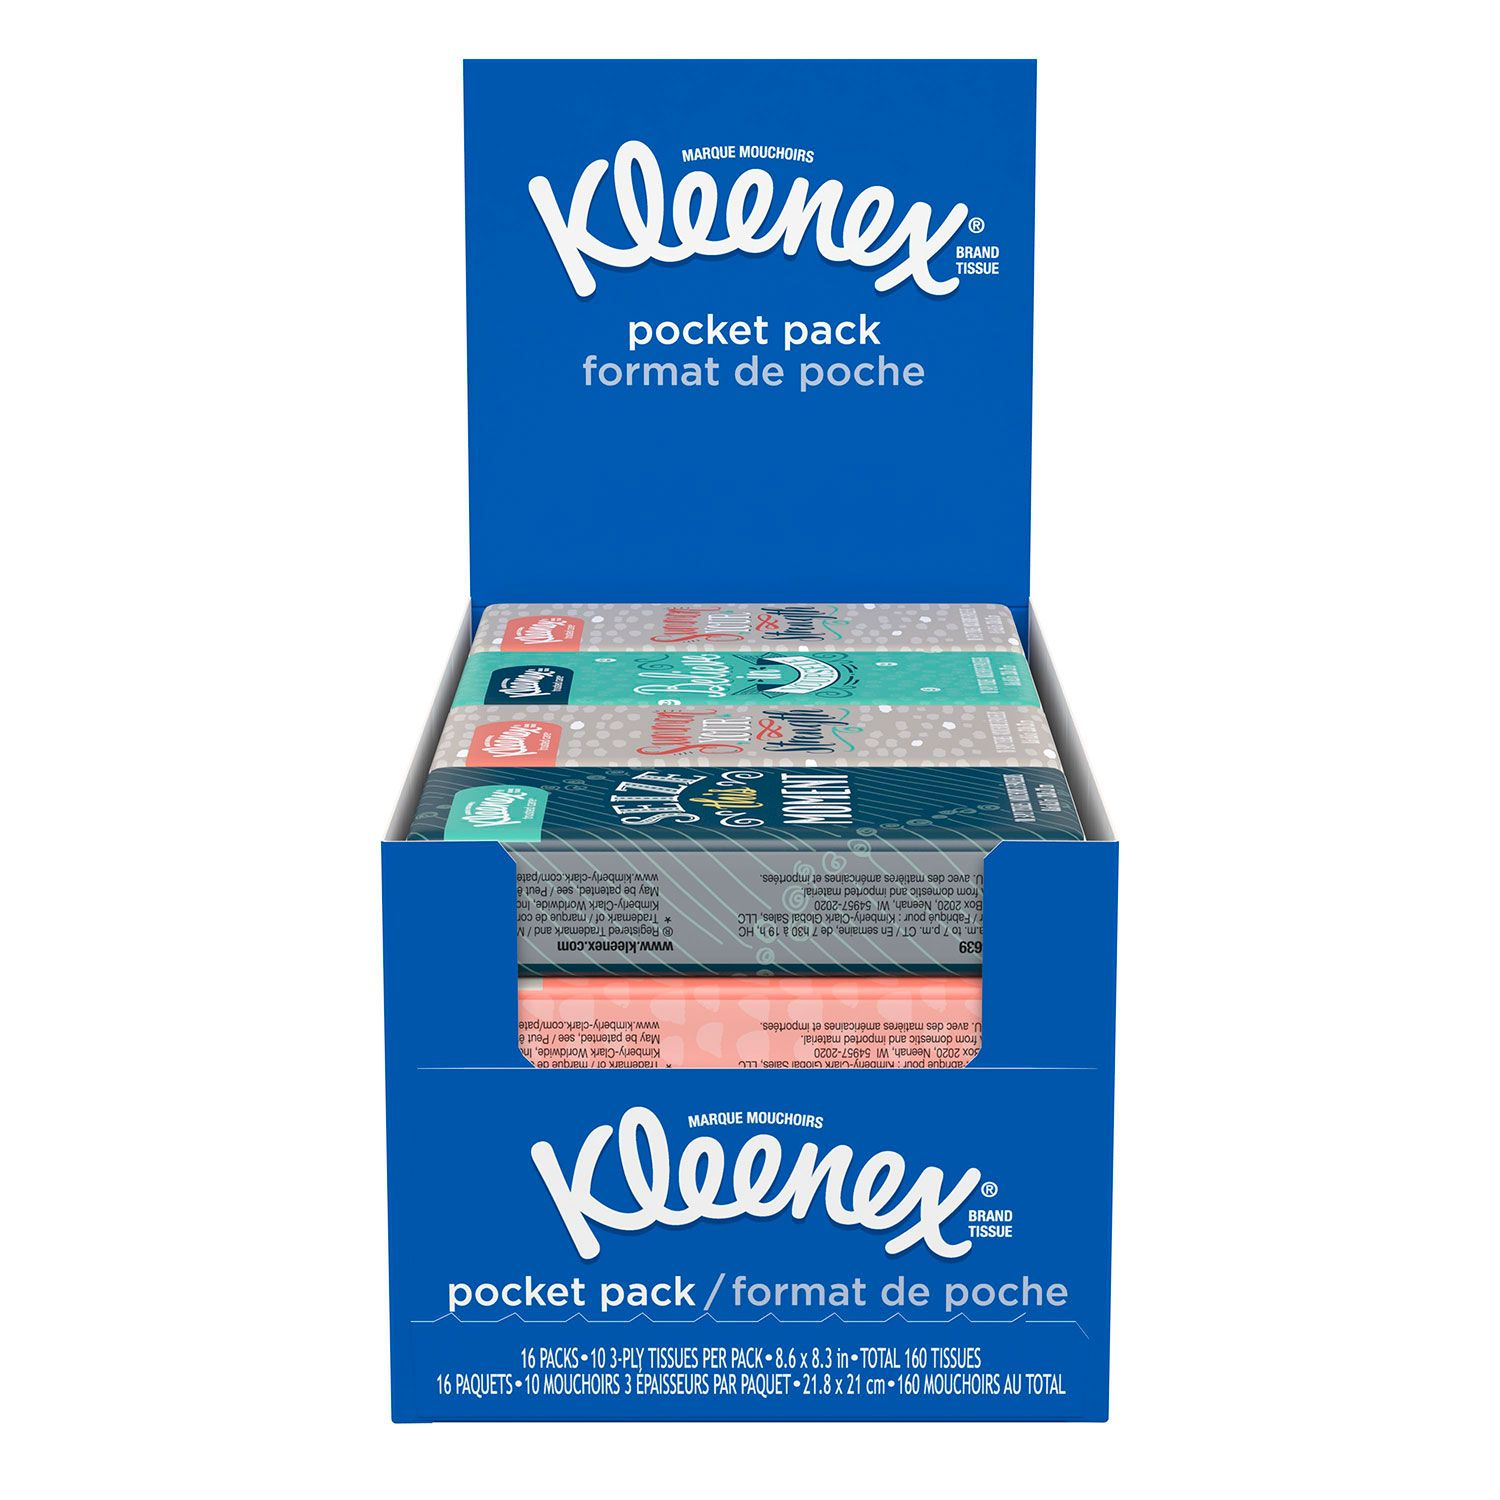 Pack Of 3 Kleenex Facial Tissues (10 Tissues per Pack, 16 pk.) Total of 48pk.